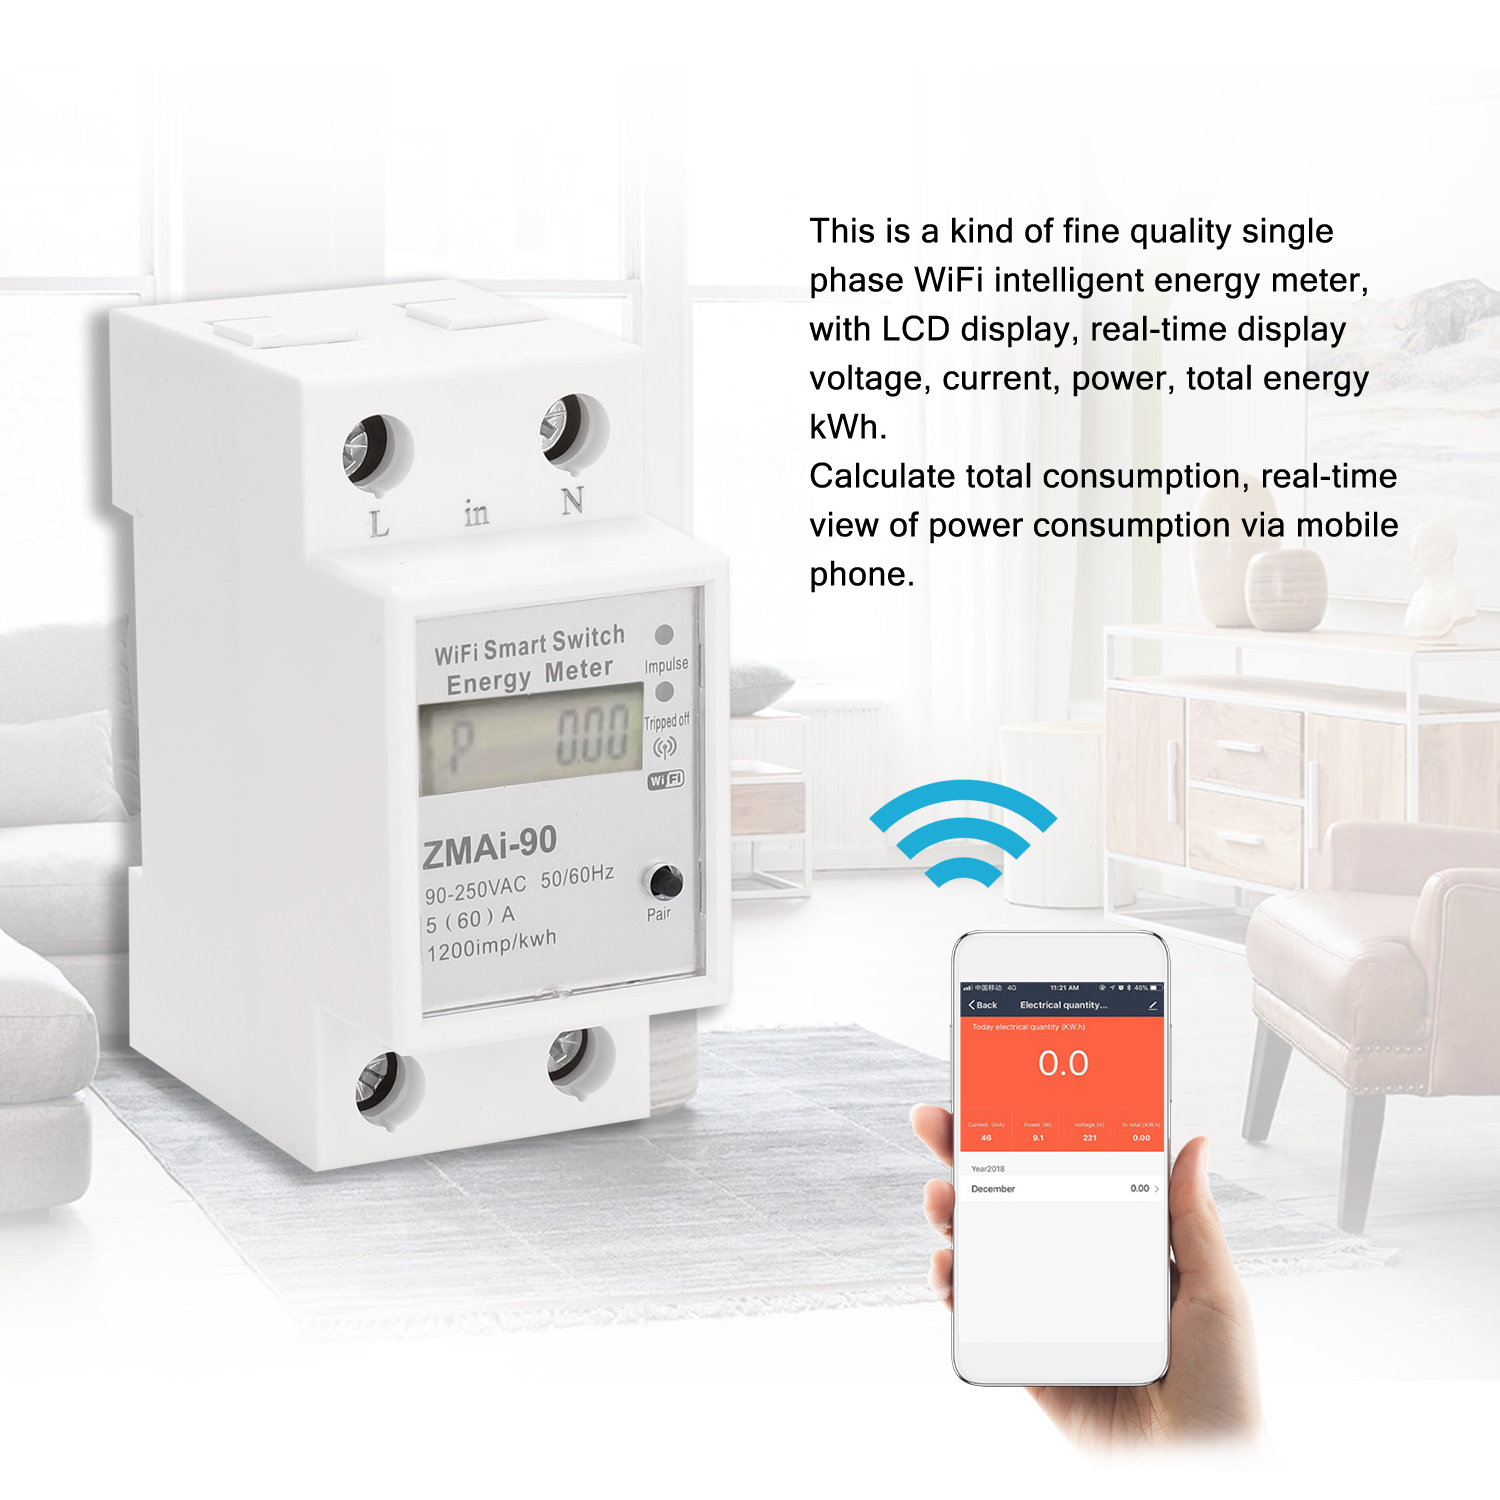 Meter LCD Smart Display Works Tuya Rail With Energy Smartlife WIFI Google Phase Single Support Type Meter Energy Home App Alexa